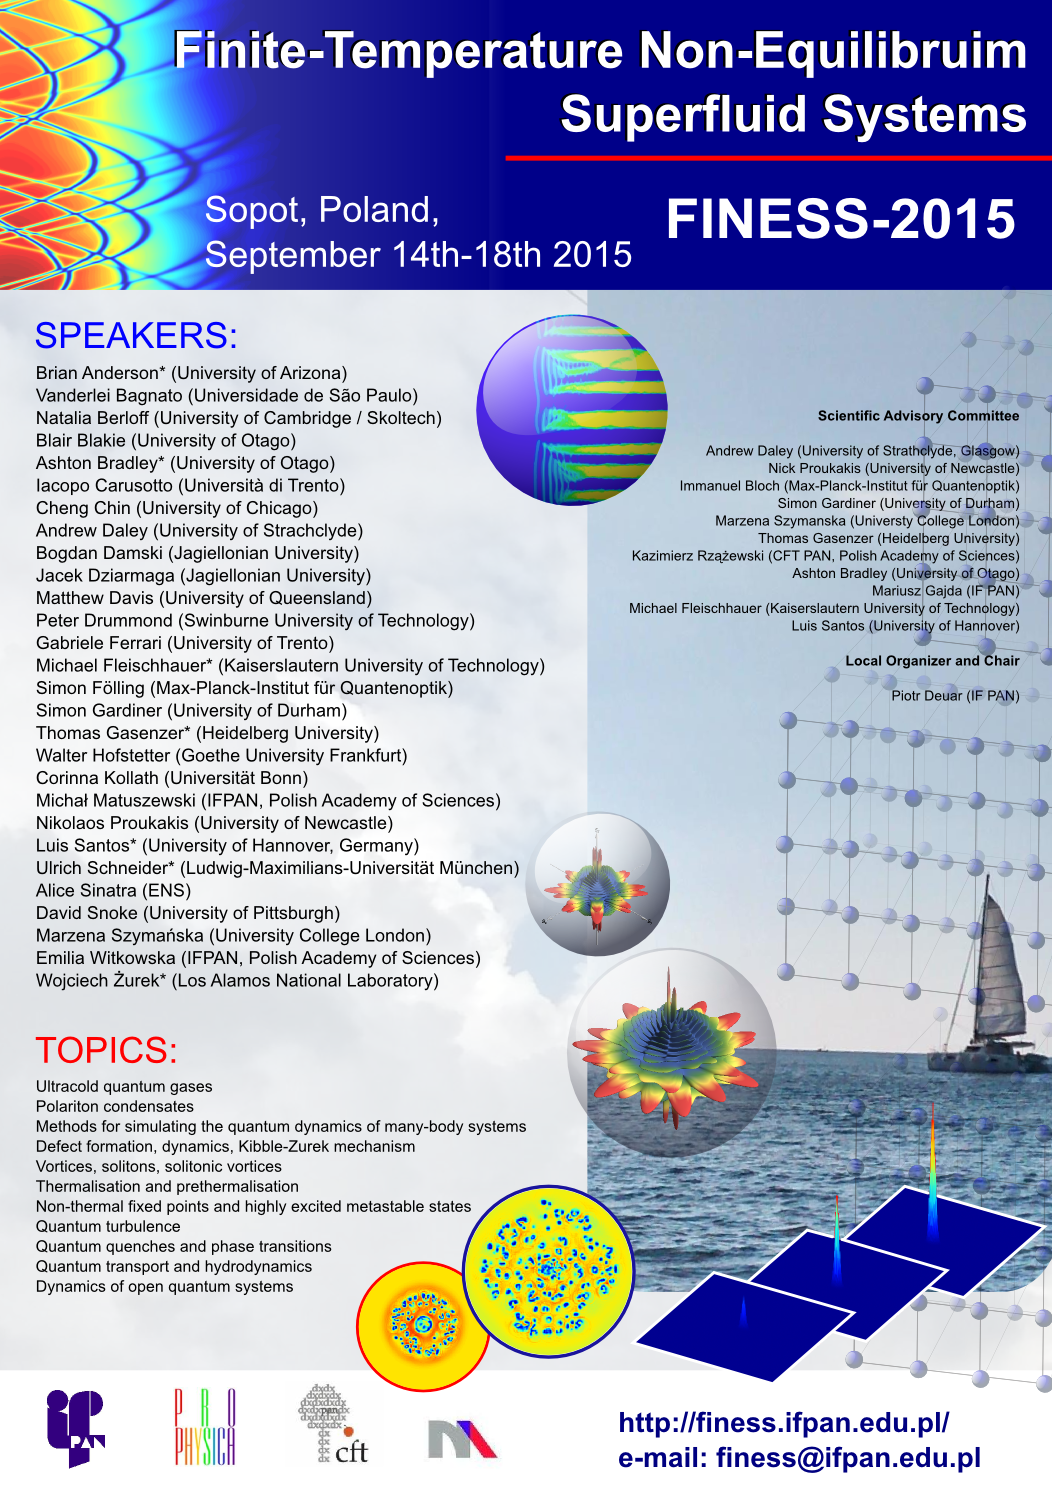 FINESS 2015 poster